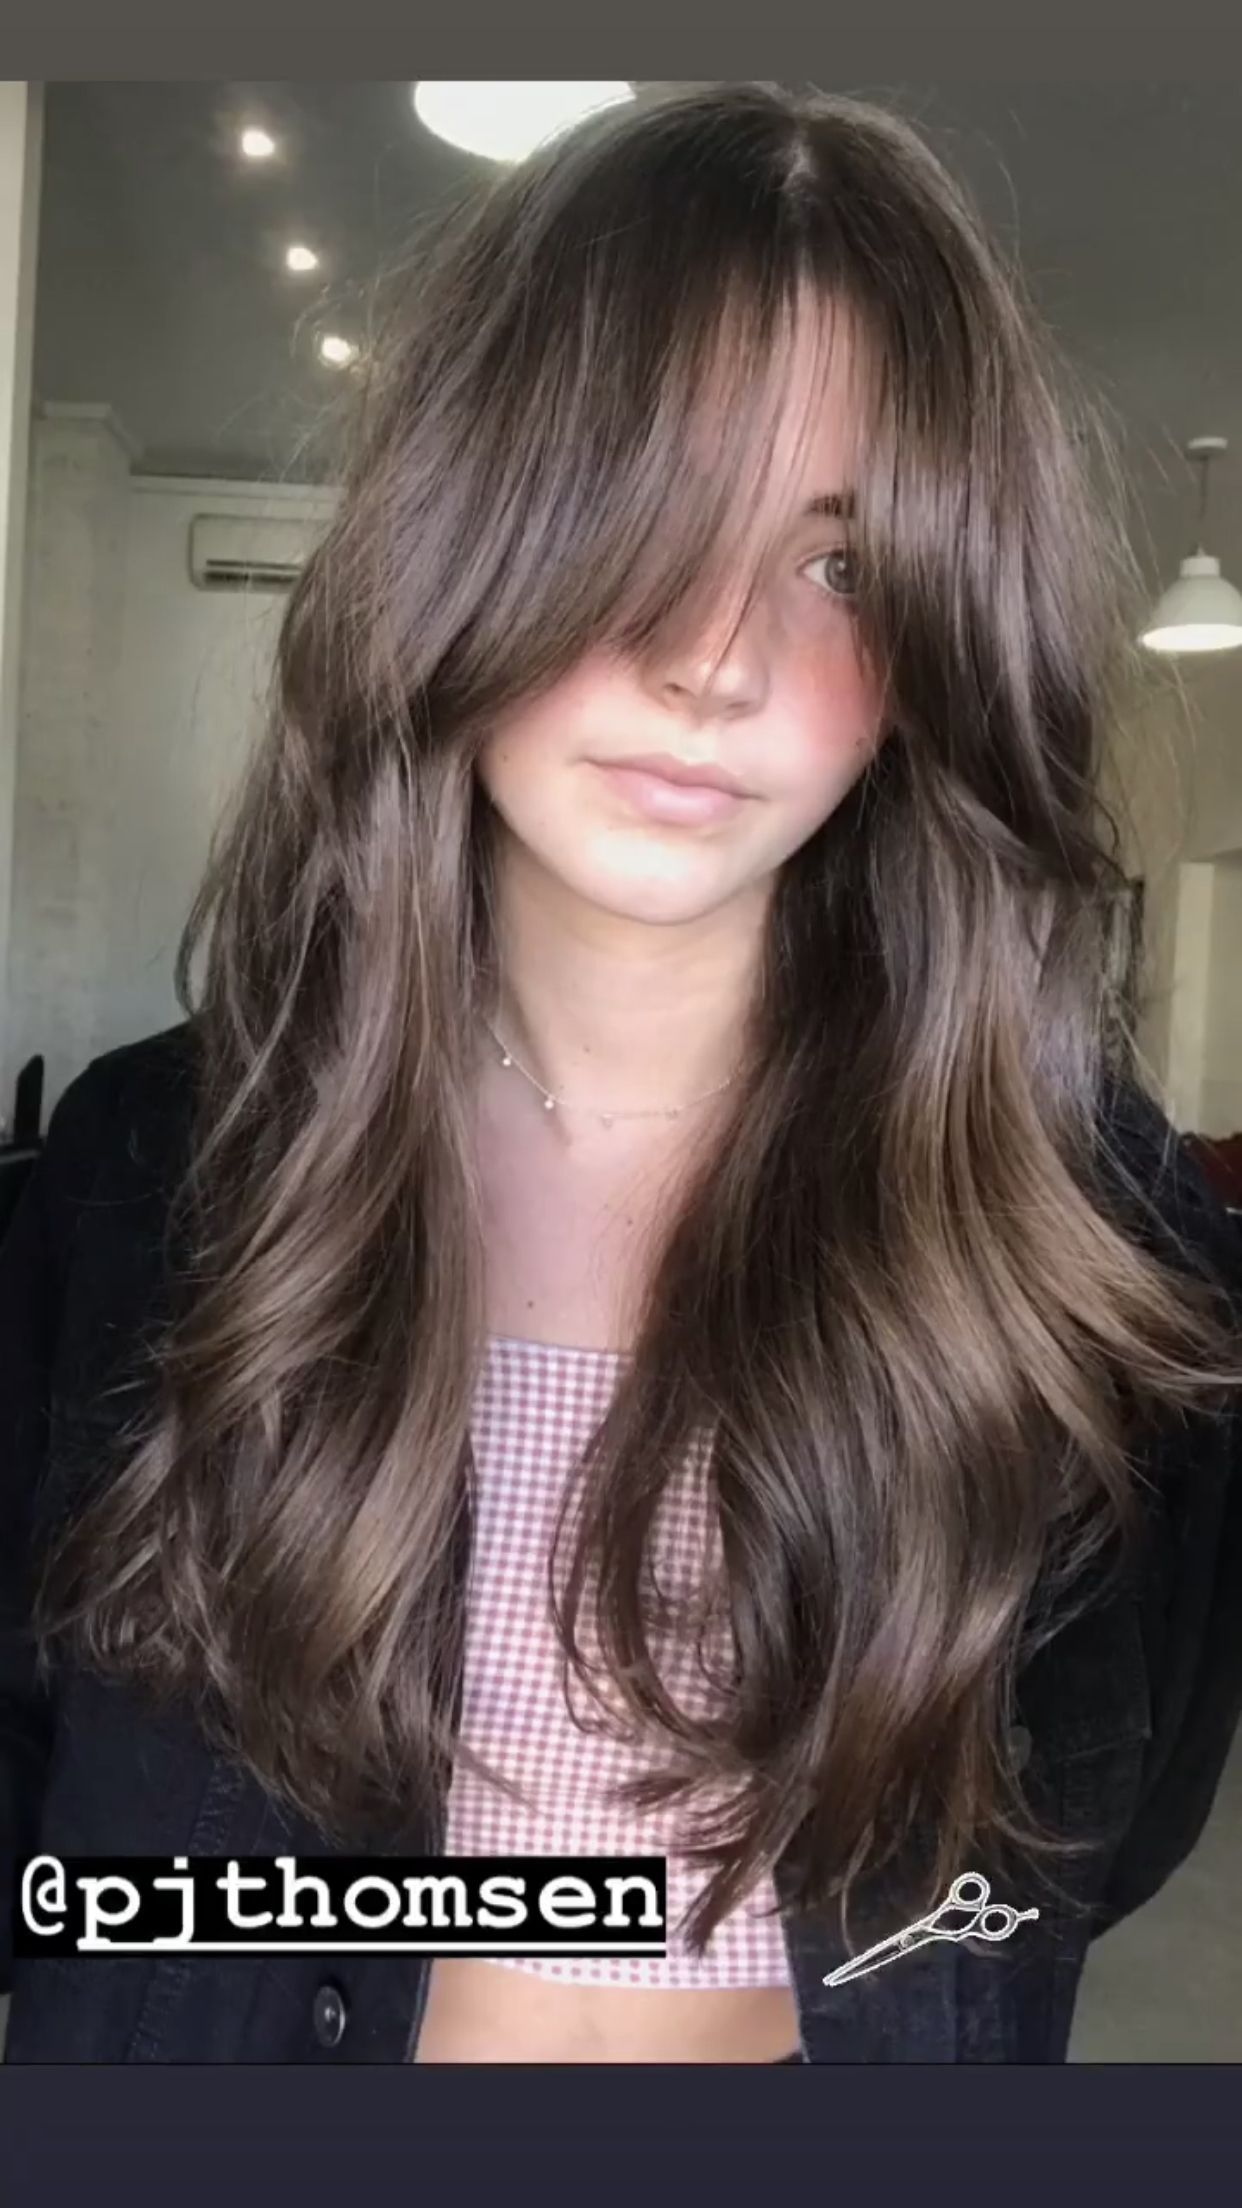 Follow Pjthomsen On Instagram Bangs Brunette Curtainbangs Longhair Beauty Industry Fashion Hair Styles Hairstyles With Bangs Hair Inspiration Long